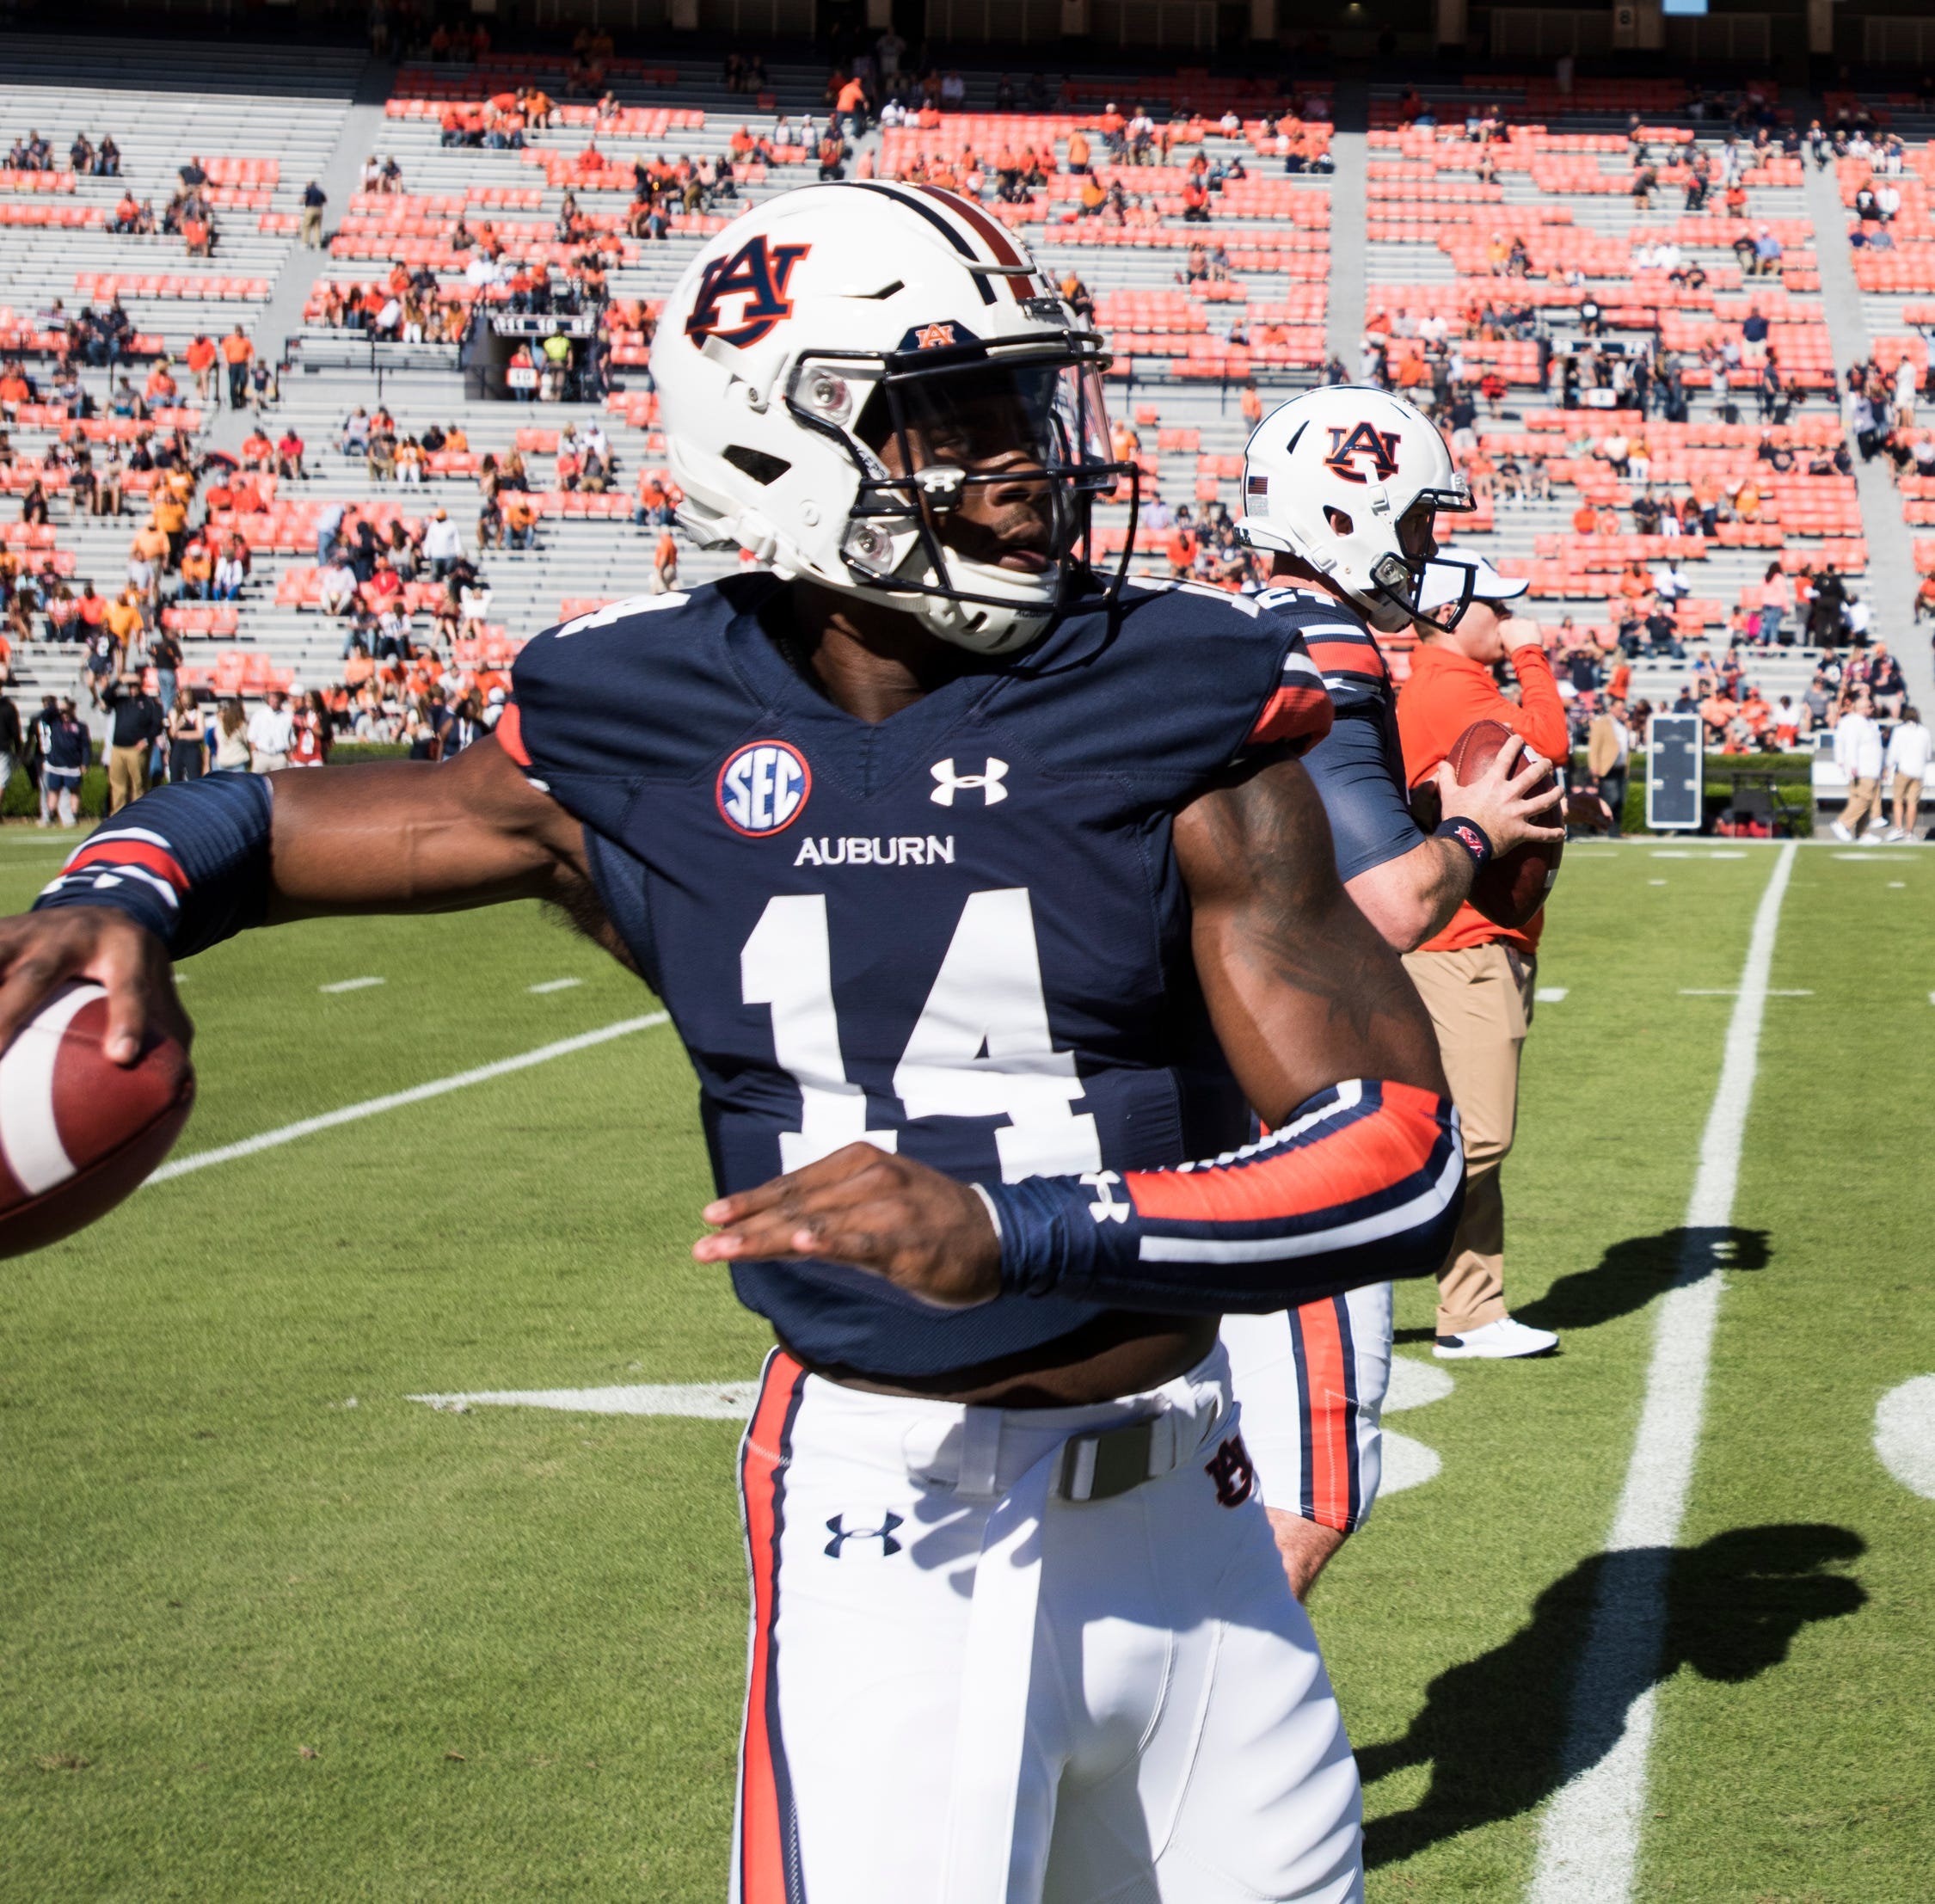 Auburn's starting quarterback next year? It won't be Malik Willis